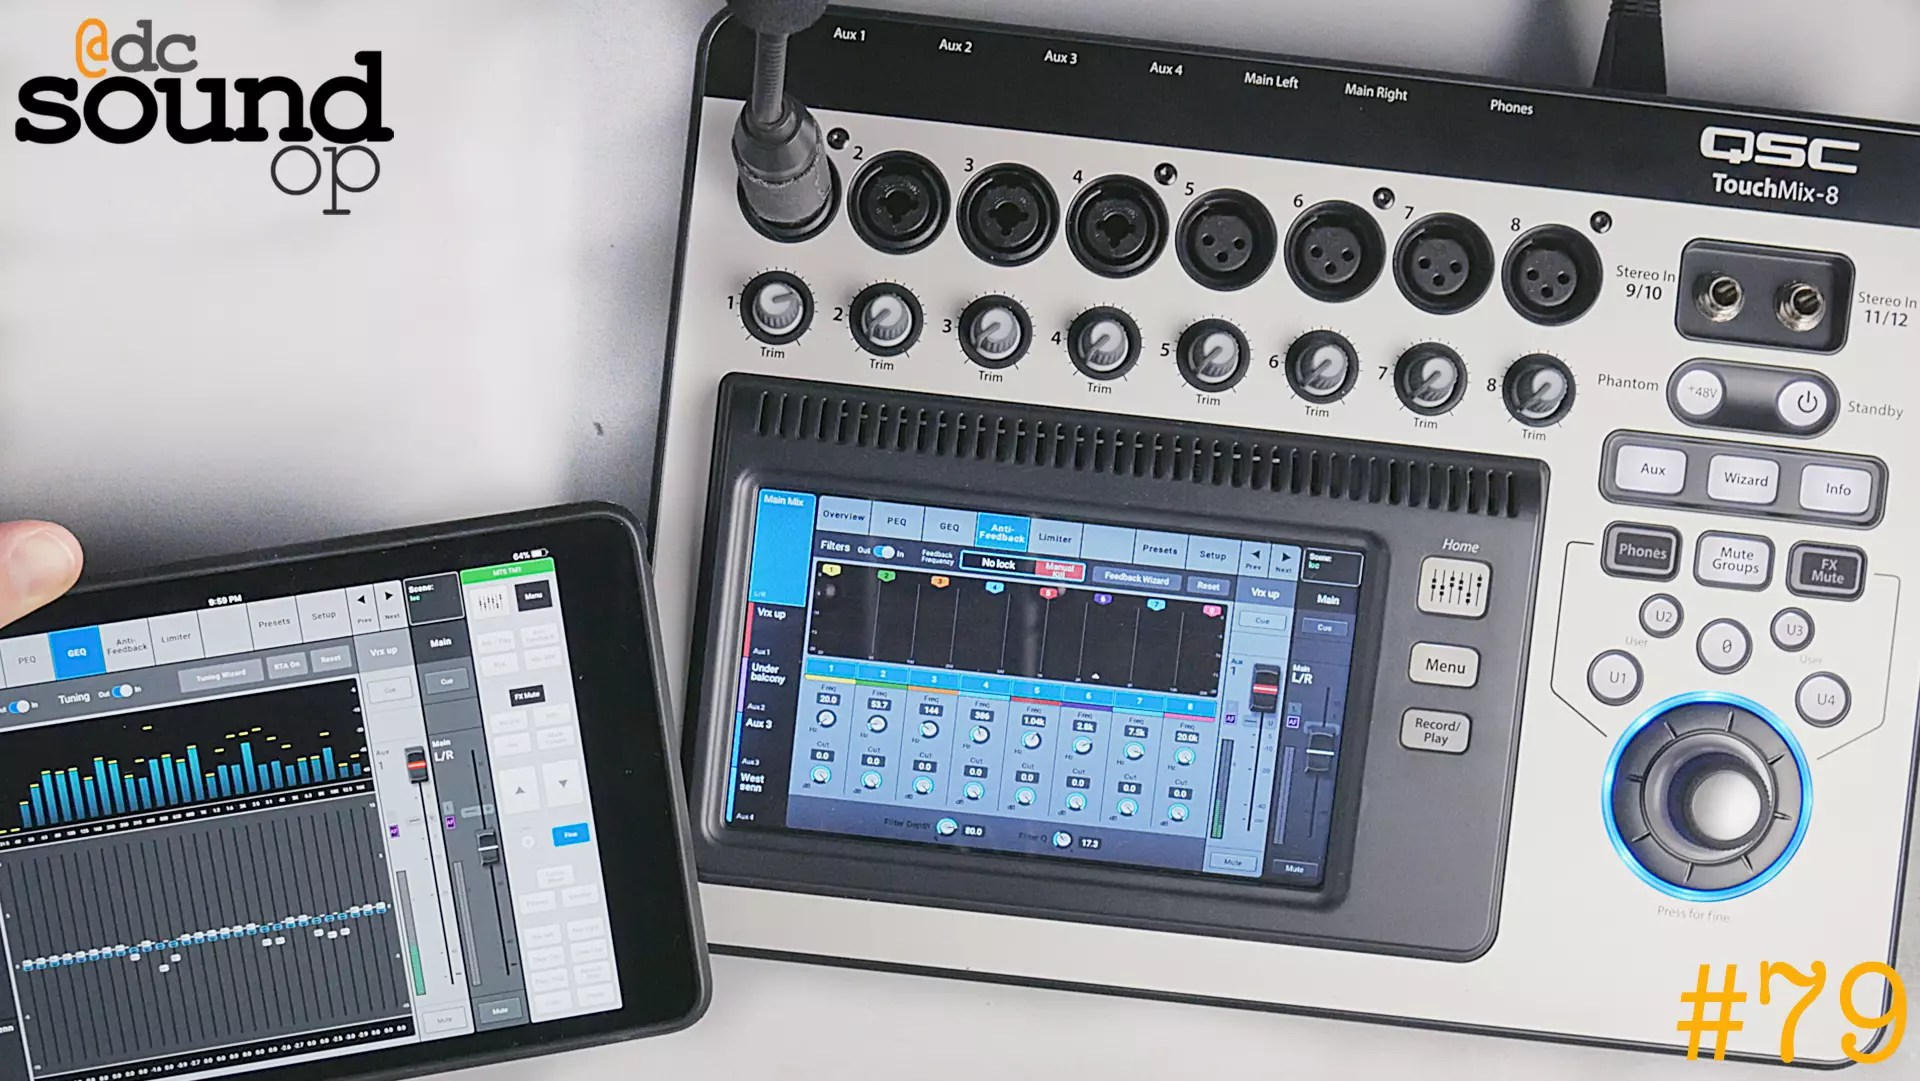 #79 – QSC TouchMix Review Update – 1 Year Later